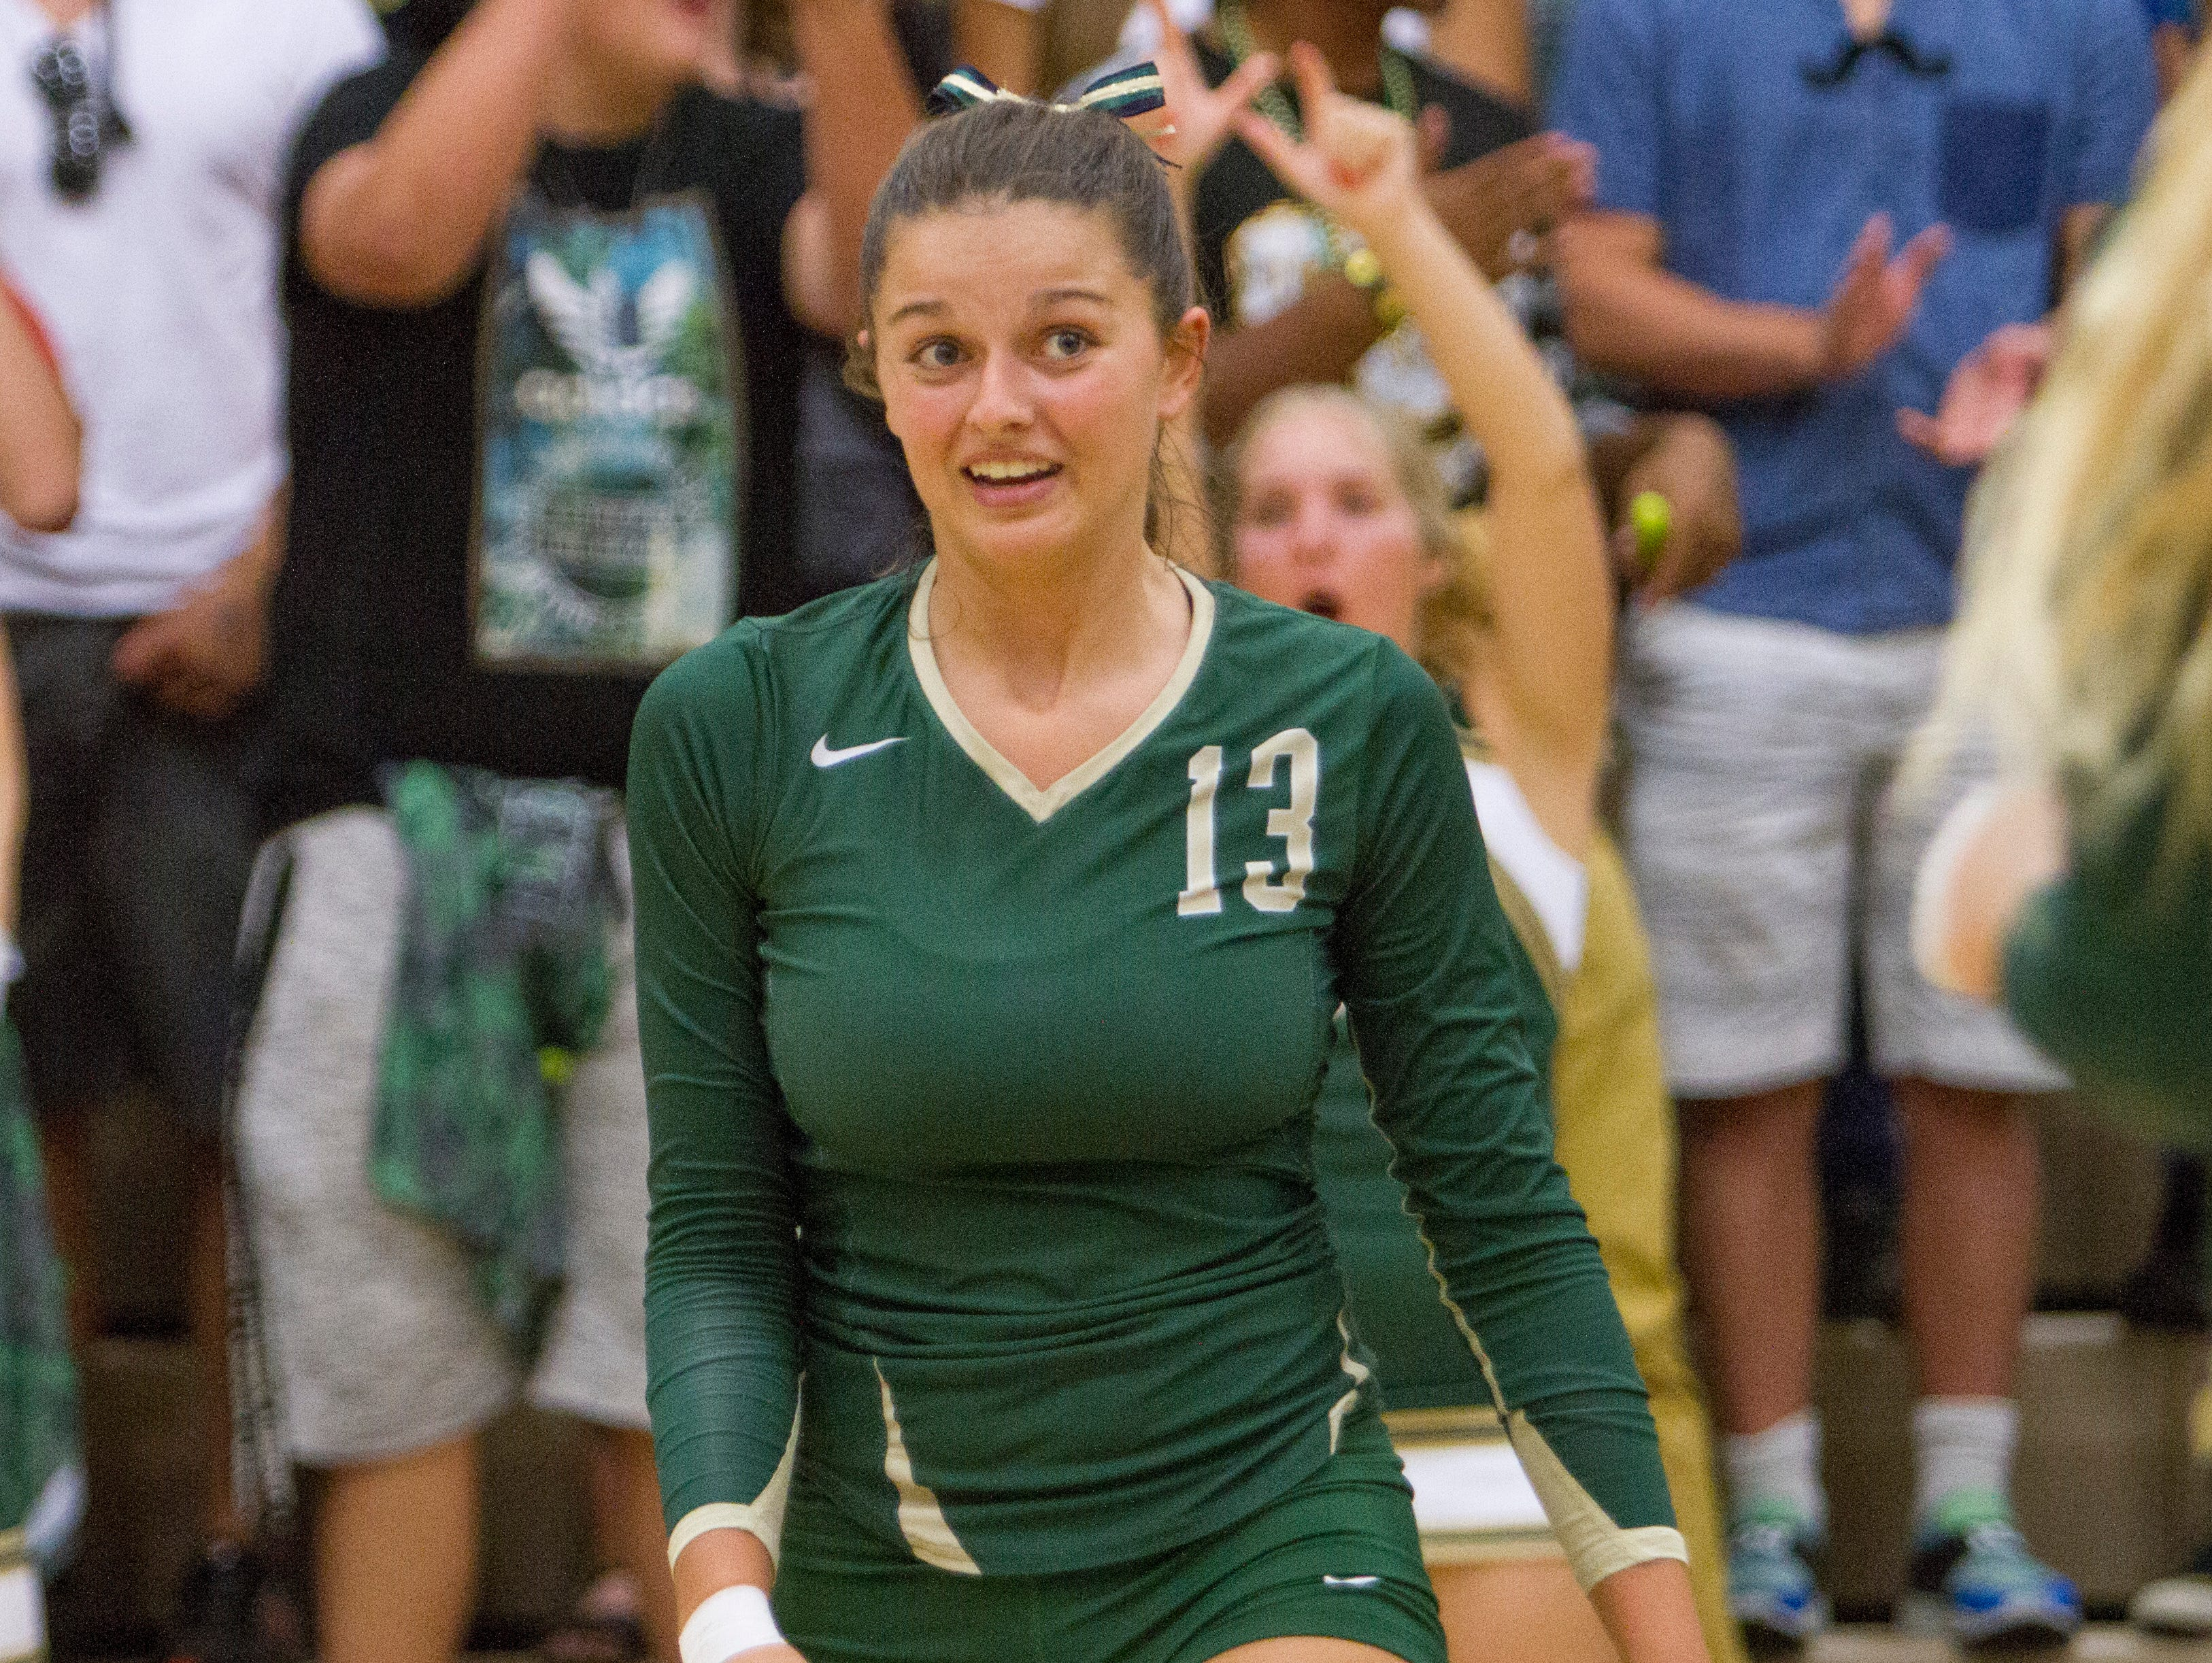 Snow Canyon volleyball beats Desert Hill in a 3-0 home game Thursday, Sept. 24, 2015.